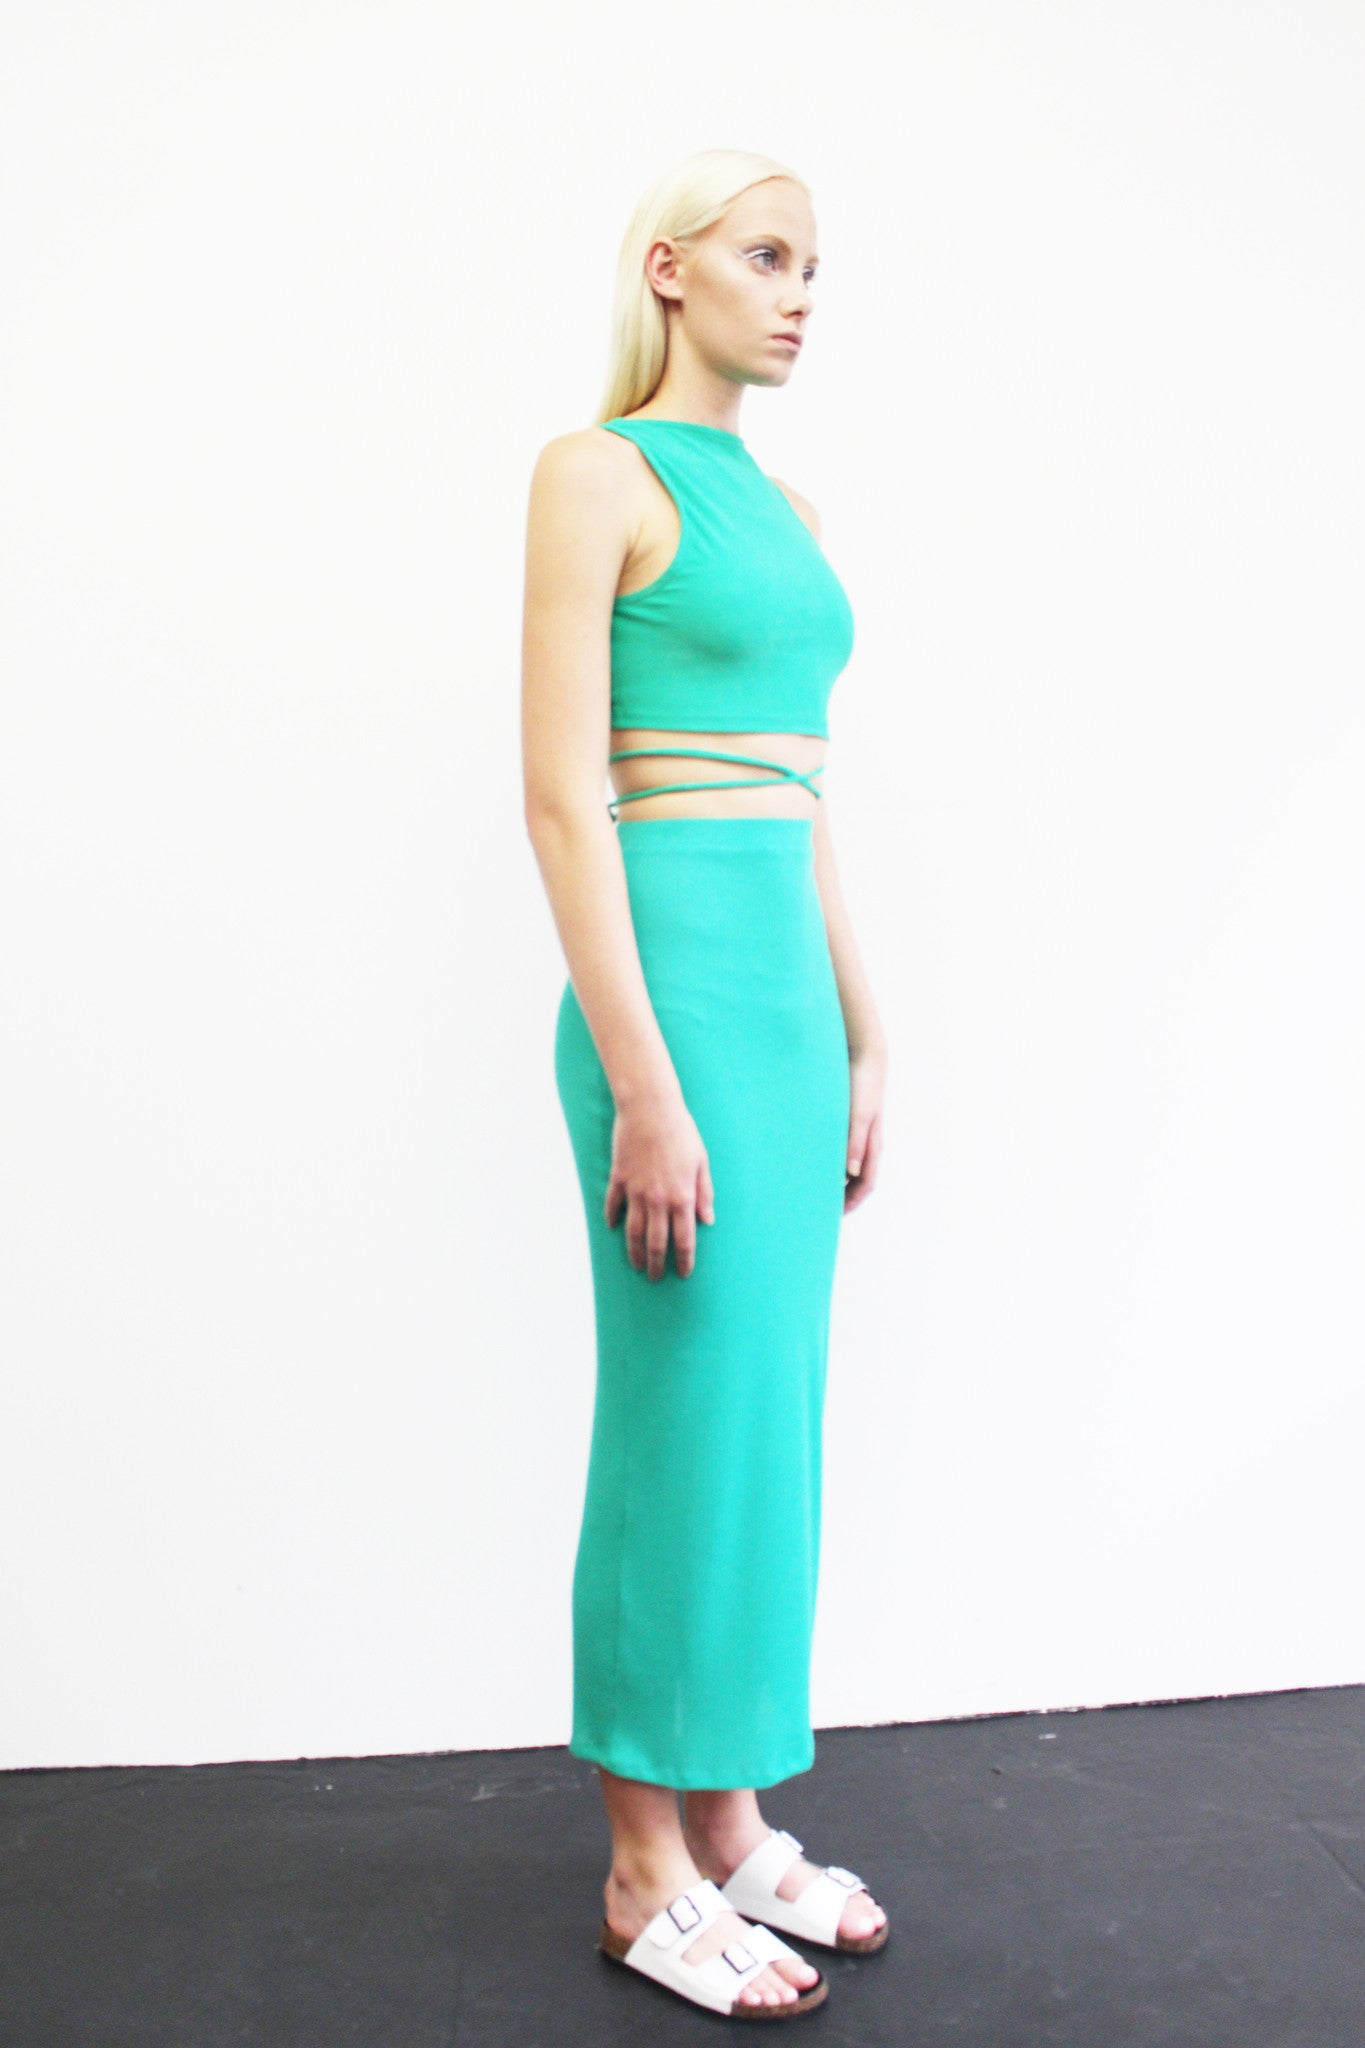 d3dc6bdd293f17 Strappy Crop Top And Skirt